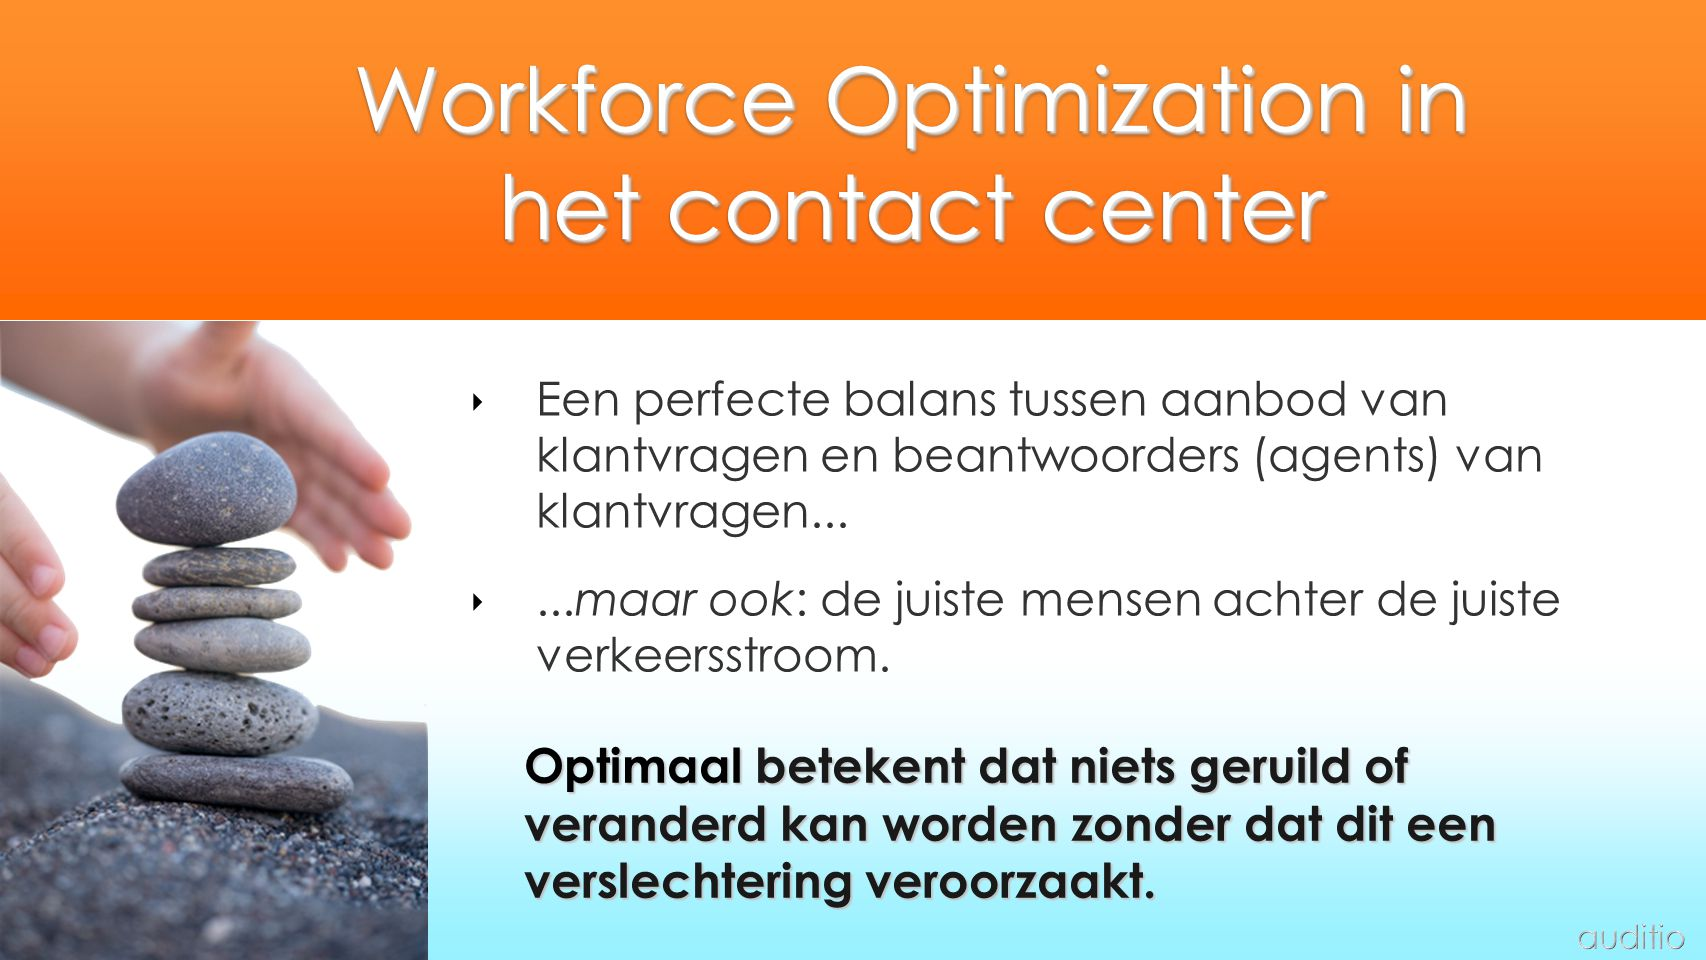 Workforce Optimization in het contact center